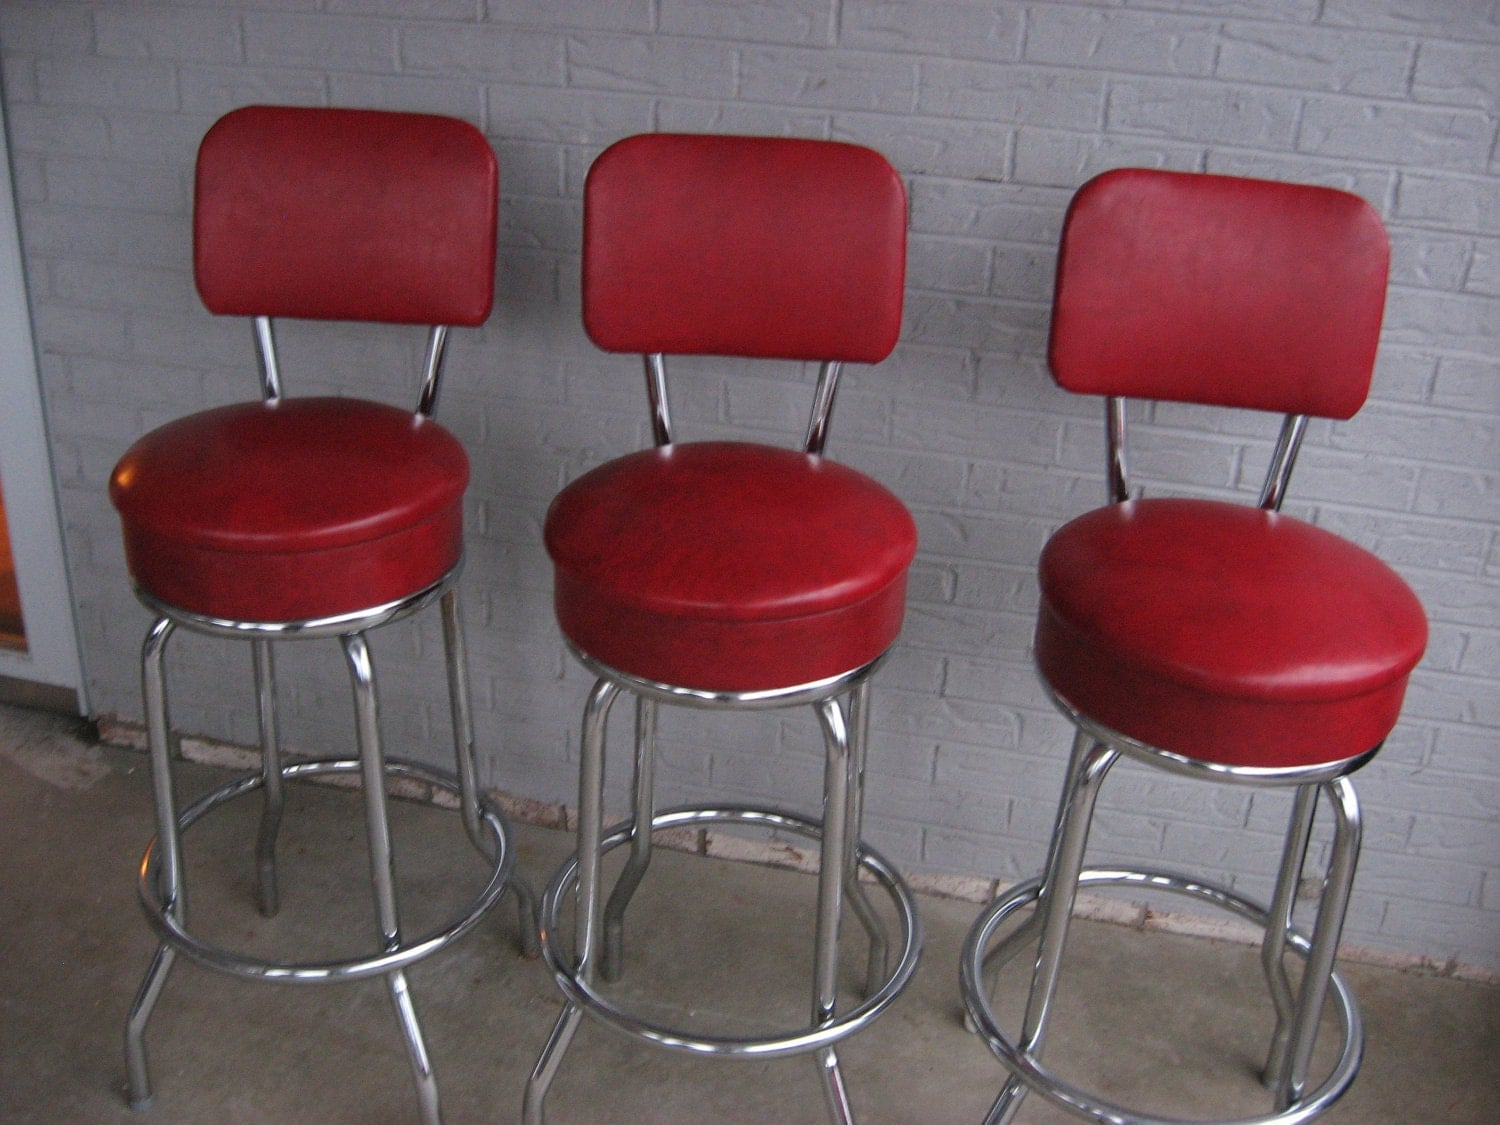 Three 3 Vintage Retro 1950s 1960s Red Bar Stools Excellent